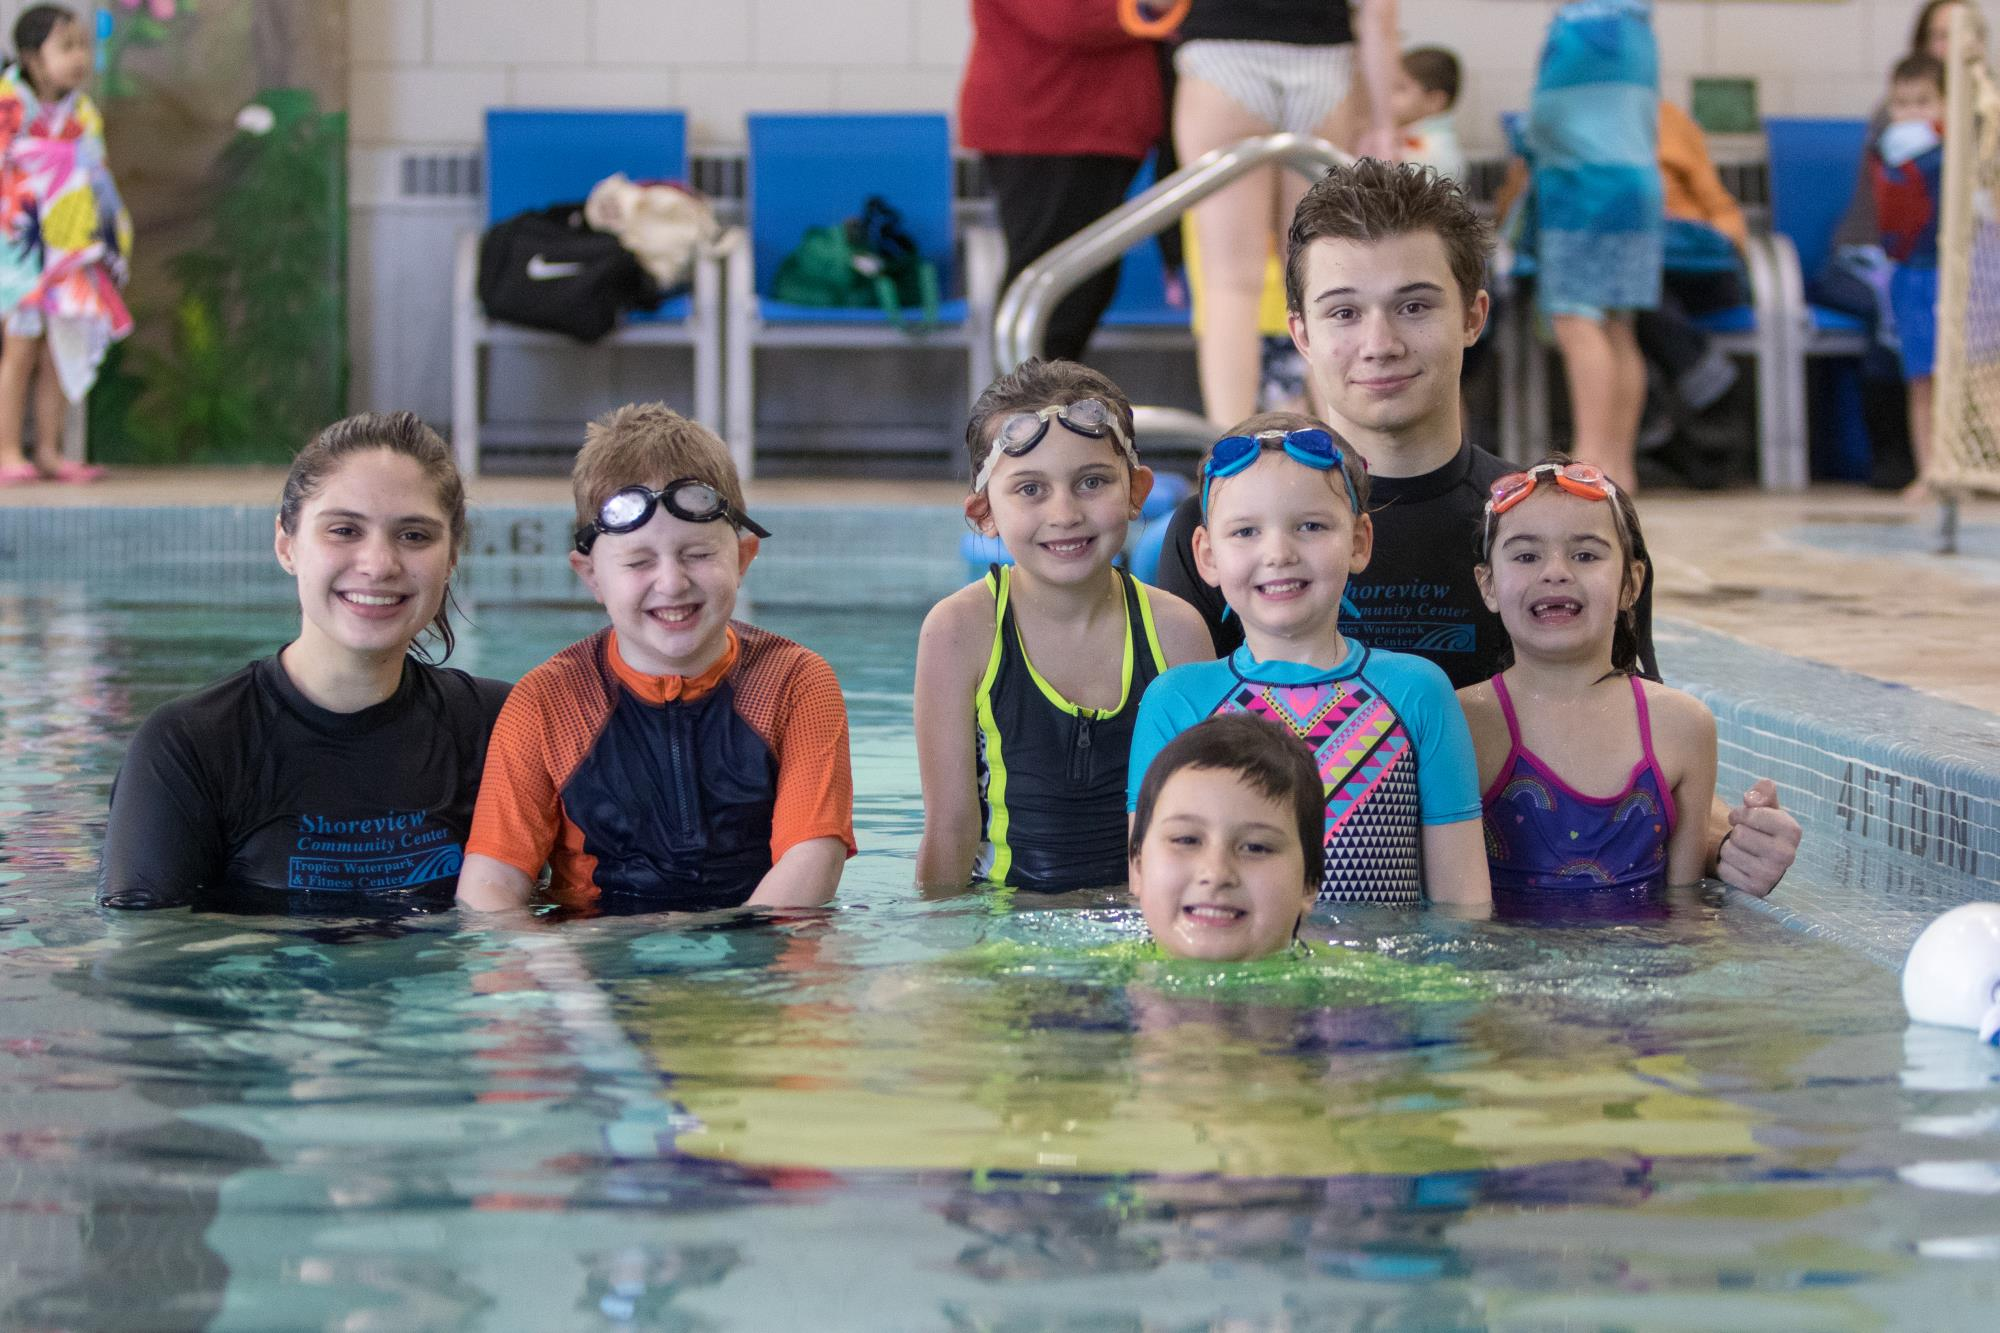 swim lesson instructors and participants